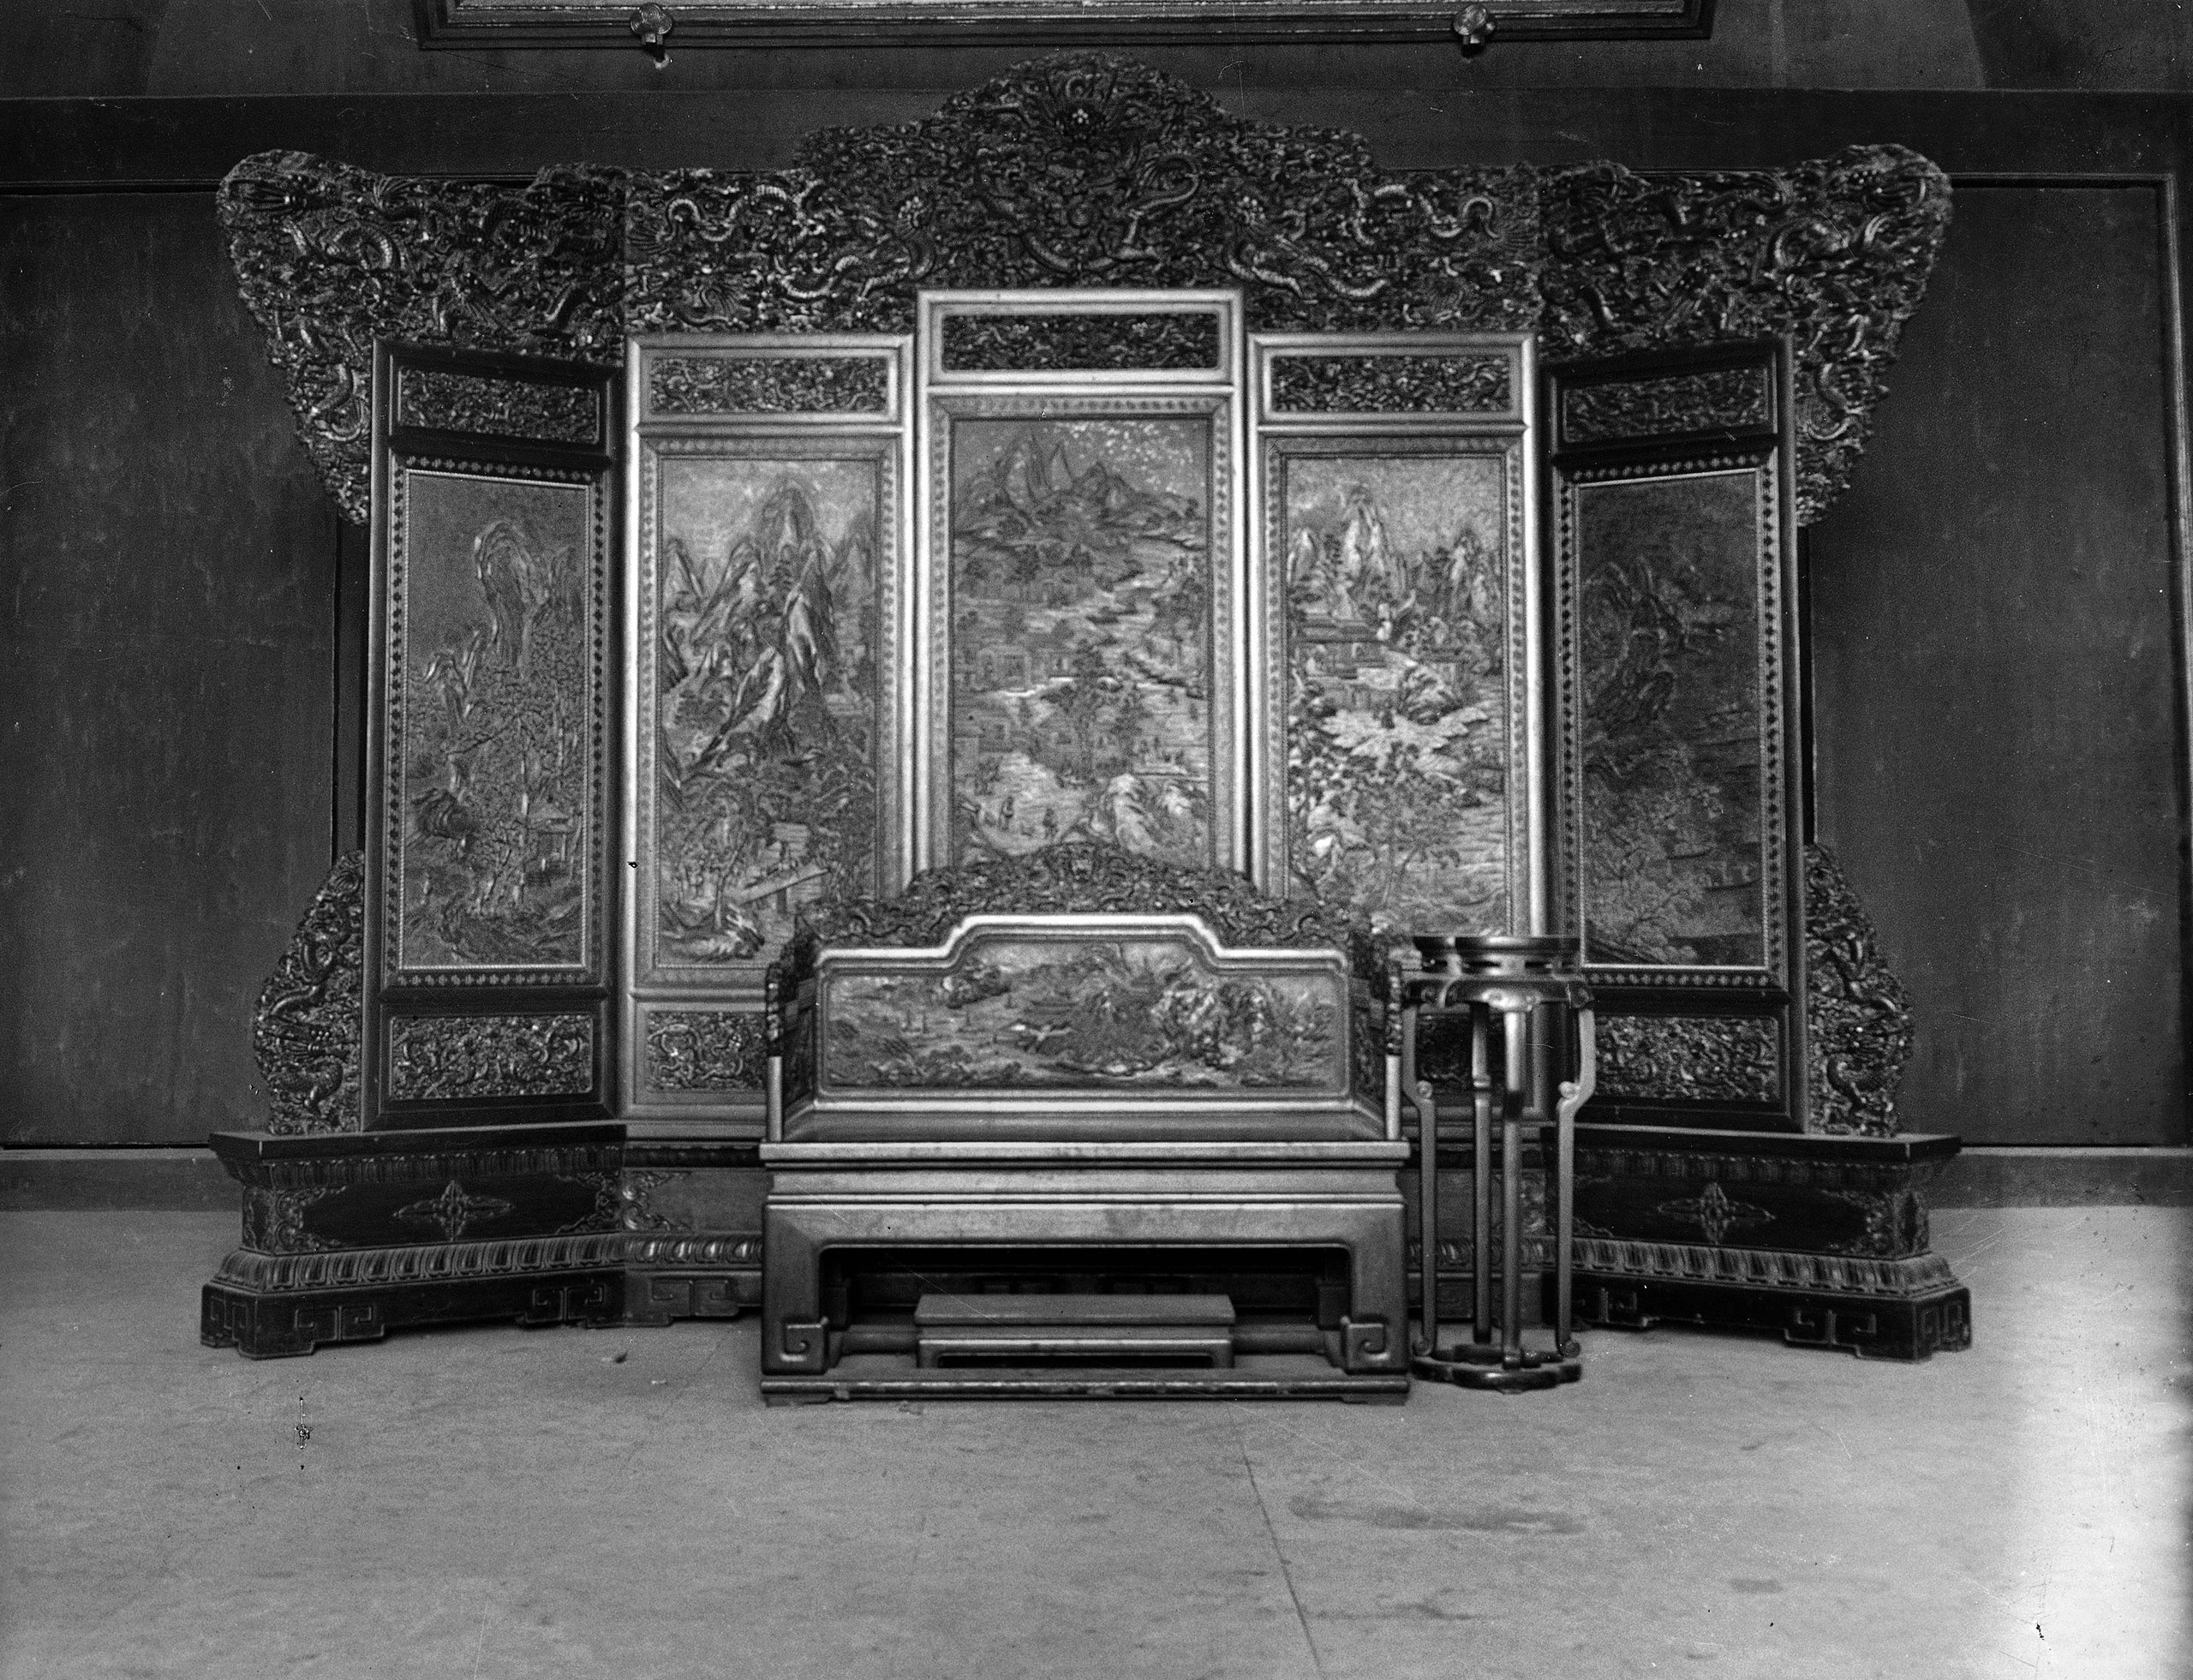 Throne of the Chinese emperor in Beijing, circa 1900.